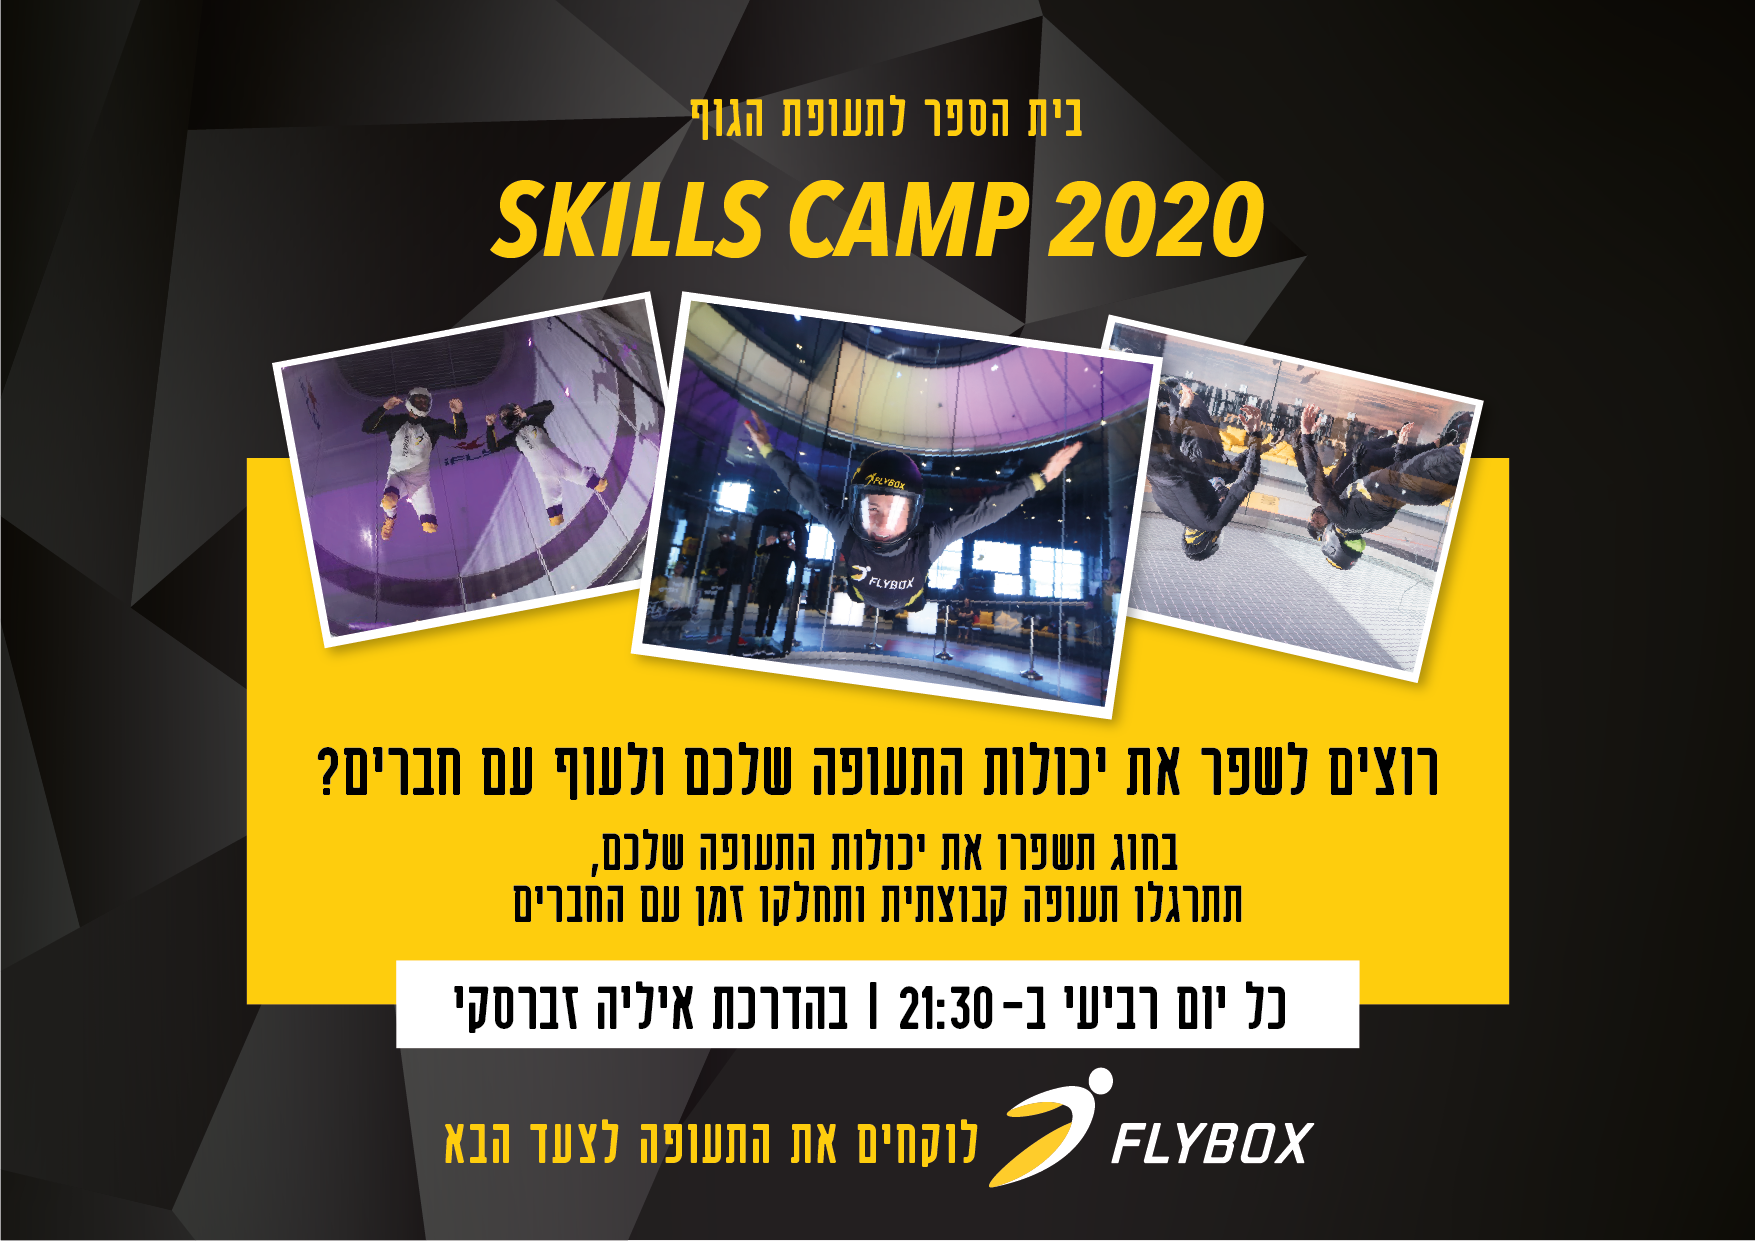 flybox_skills camp-02